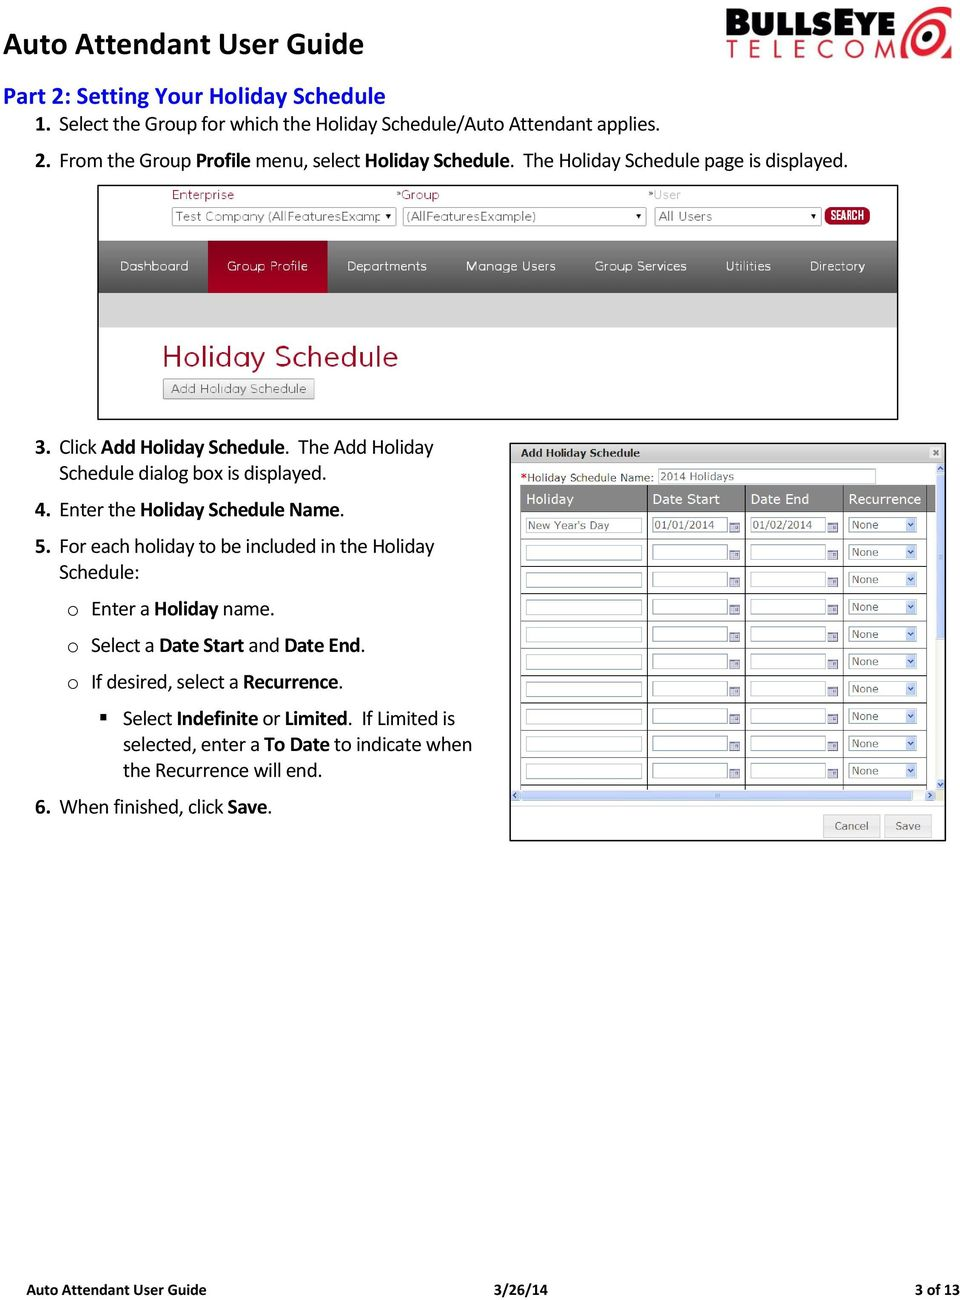 For each holiday to be included in the Holiday Schedule: o Enter a Holiday name. o Select a Date Start and Date End. o If desired, select a Recurrence.